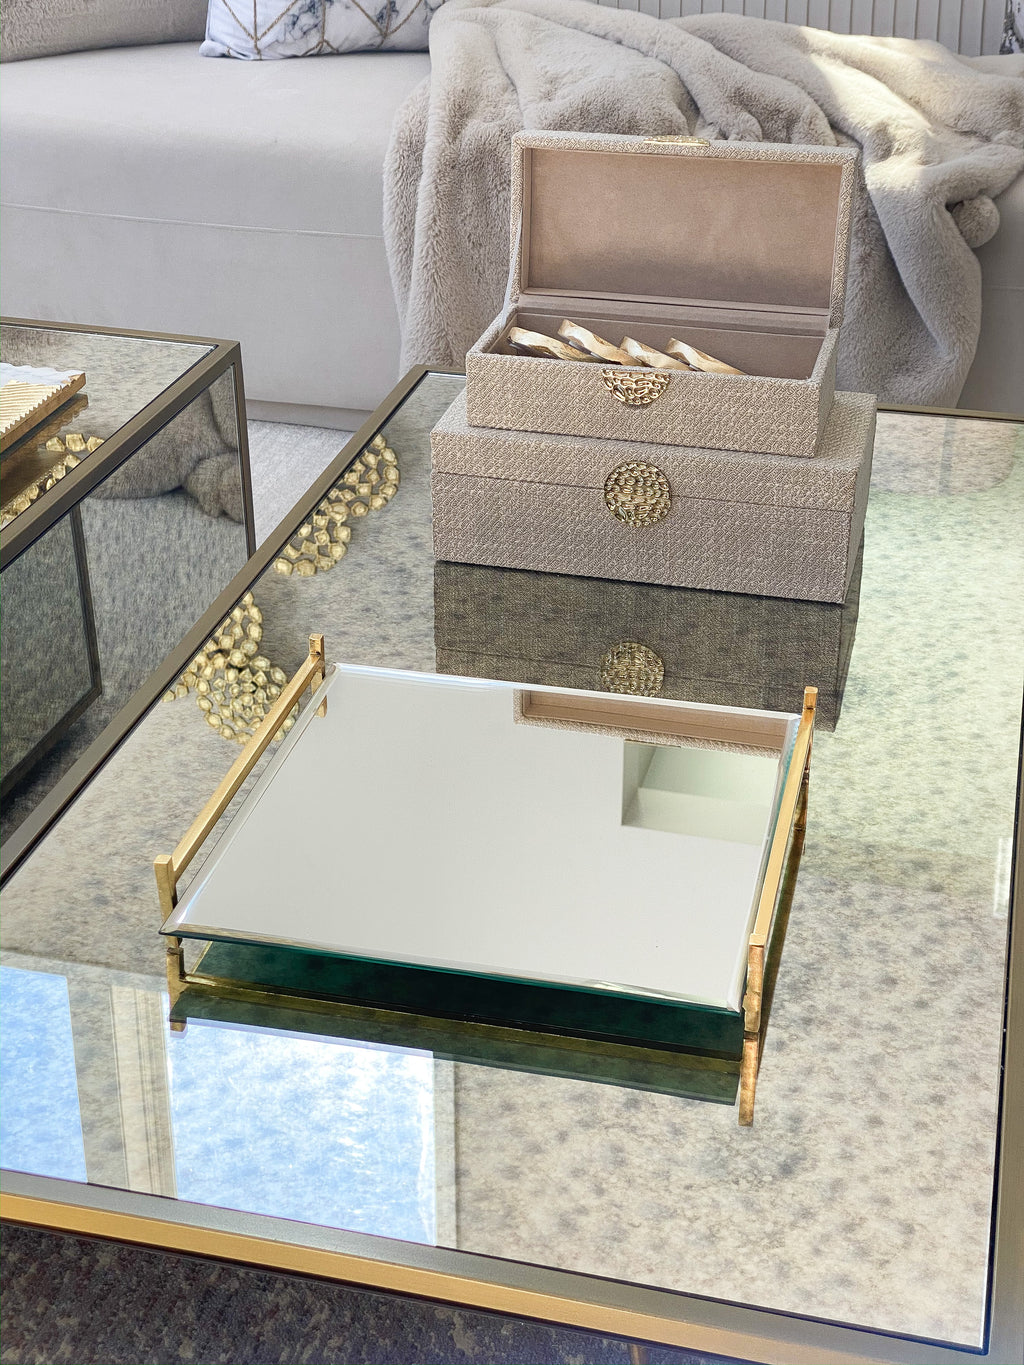 Square Mirror Tray w/ Gold Handles-Inspire Me! Home Decor